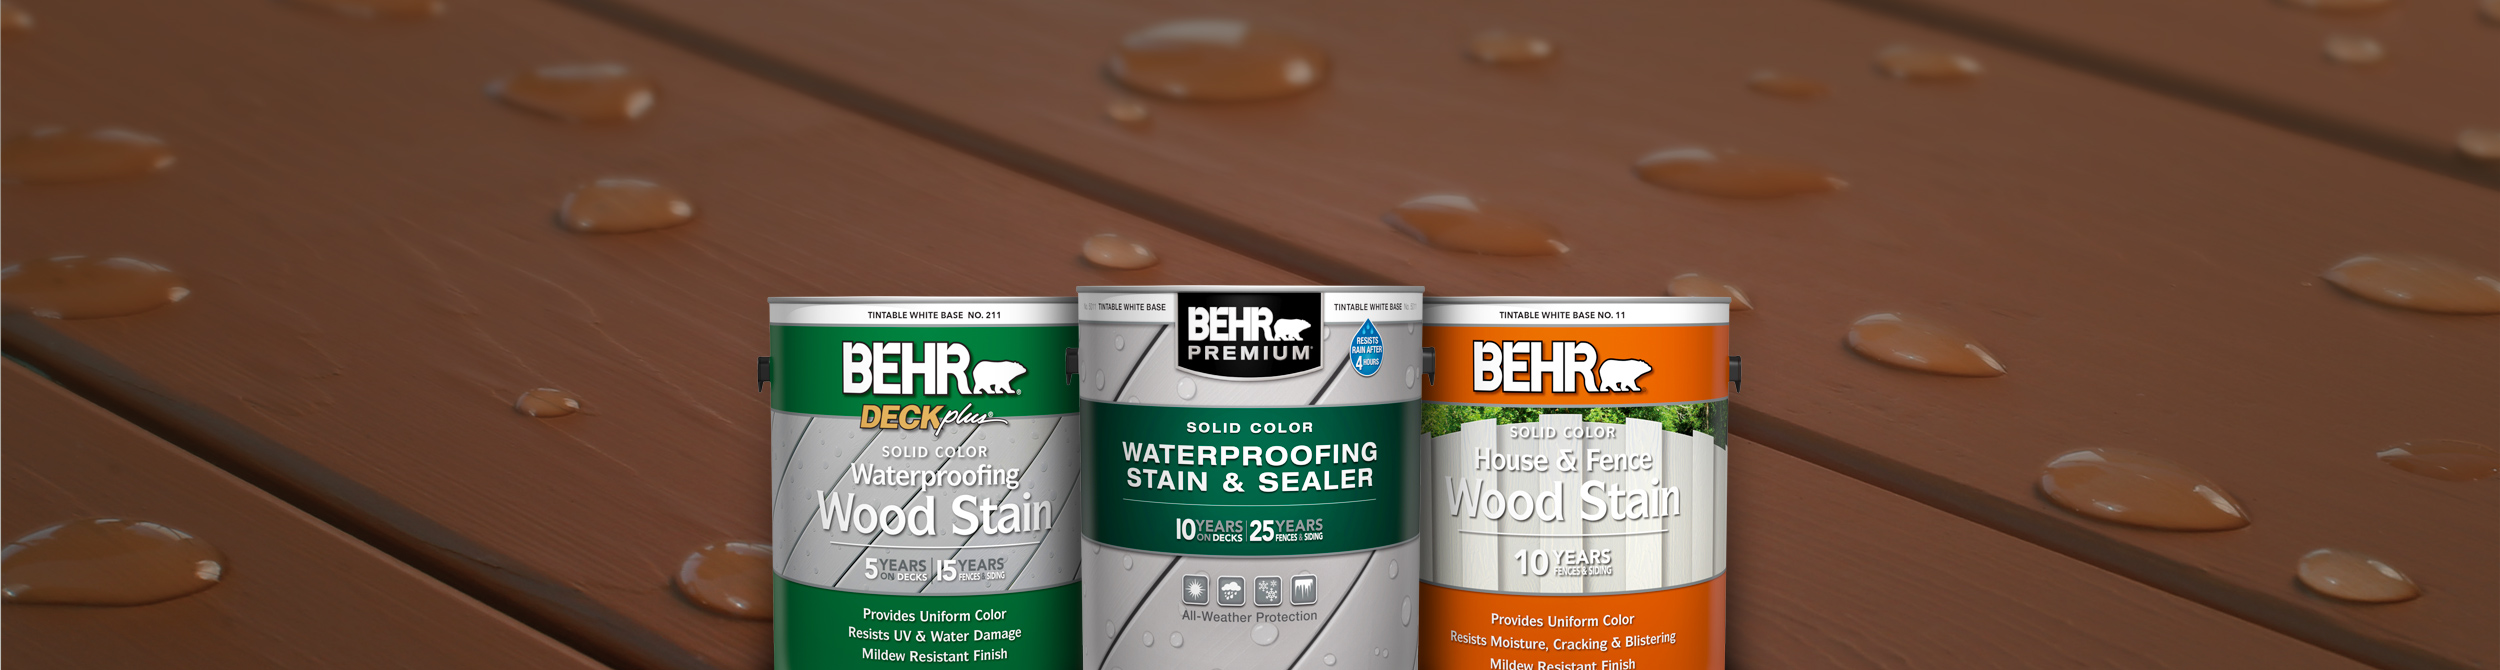 Solid Wood Stain Products | Behr